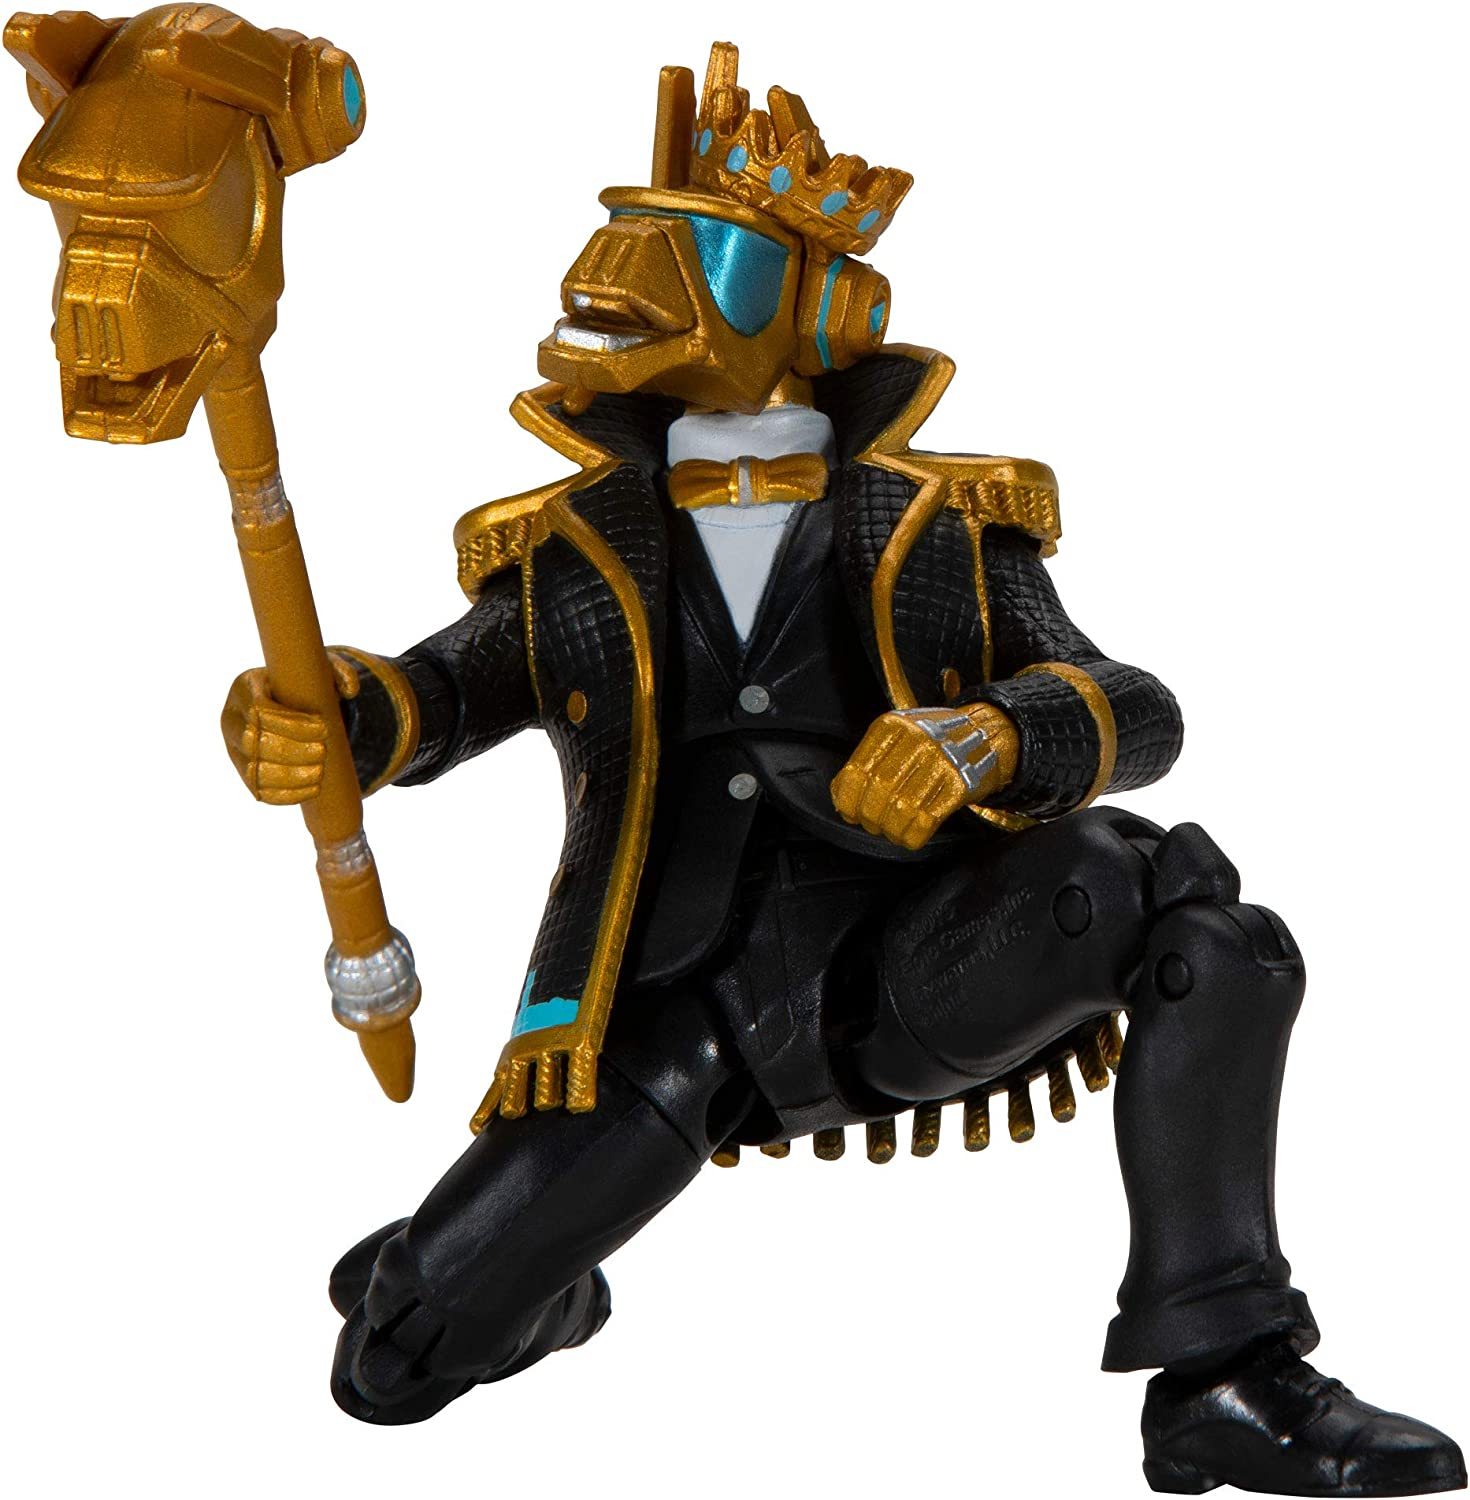 Amazon Com Fortnite Fnt0605 4 Inch Solo Mode Core Figure Y0nd3r Flair Toys Games Gleb y0nd vazhnov is a popular dota 2 streamer. fortnite fnt0605 4 inch solo mode core figure y0nd3r flair